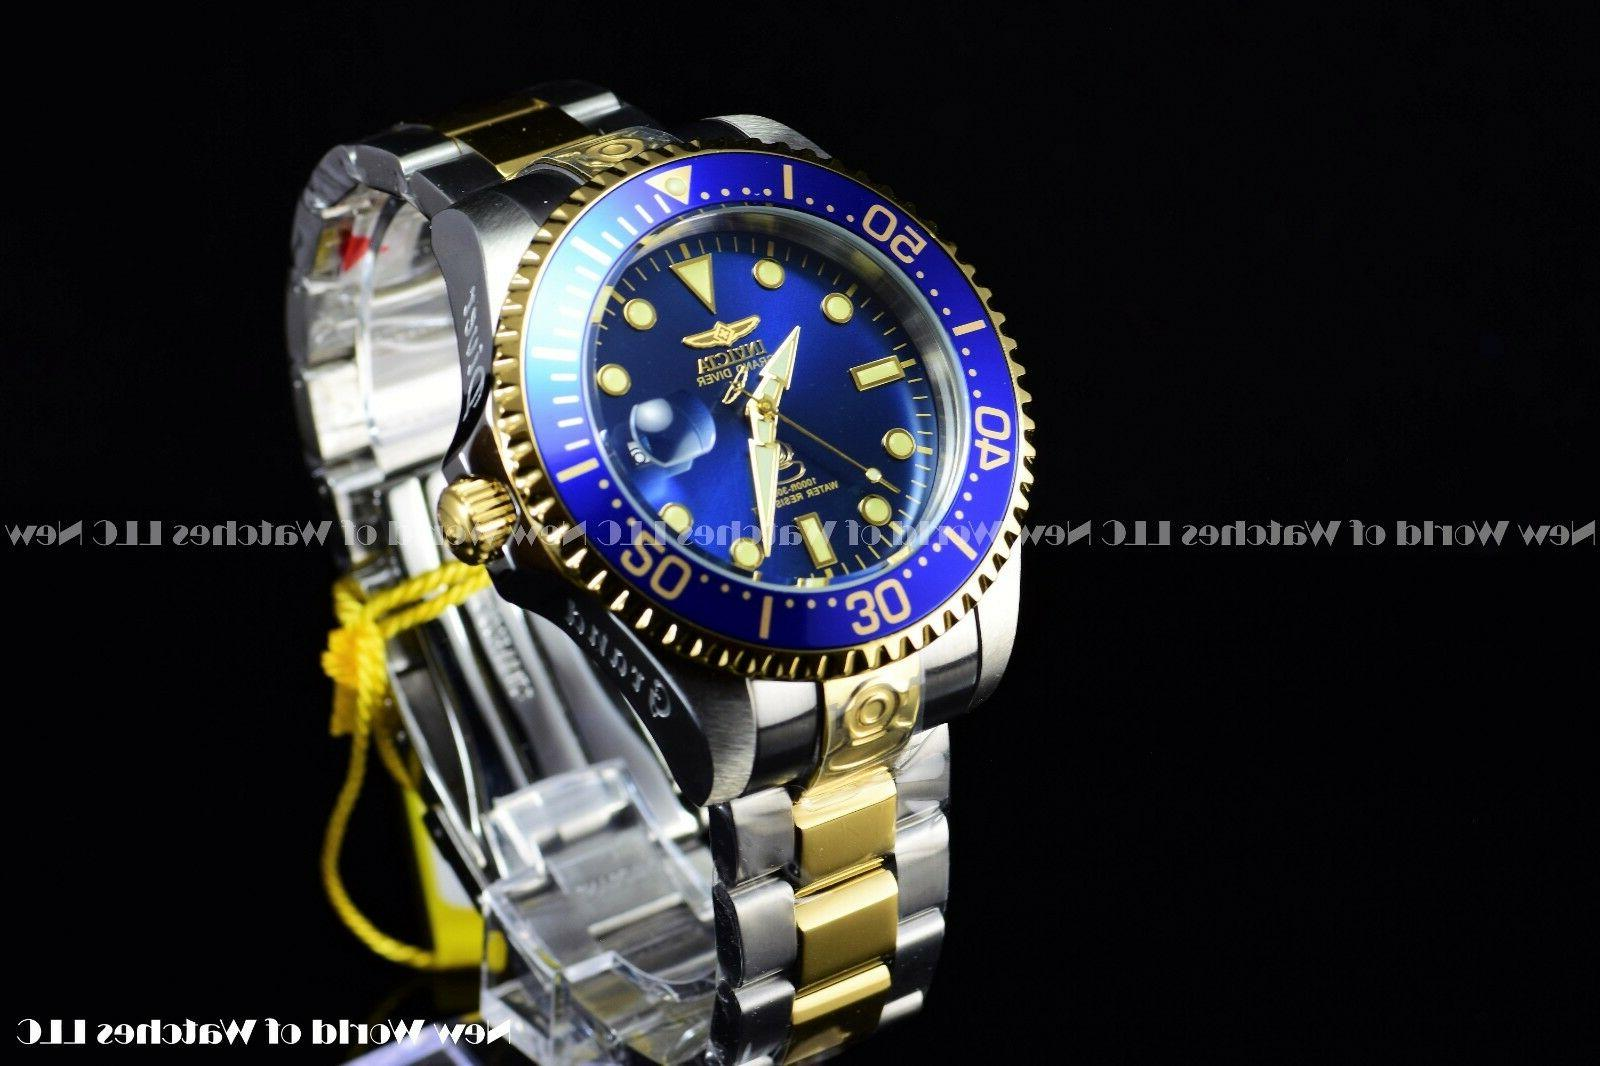 Invicta Men's Diver Two Blue SS Watch